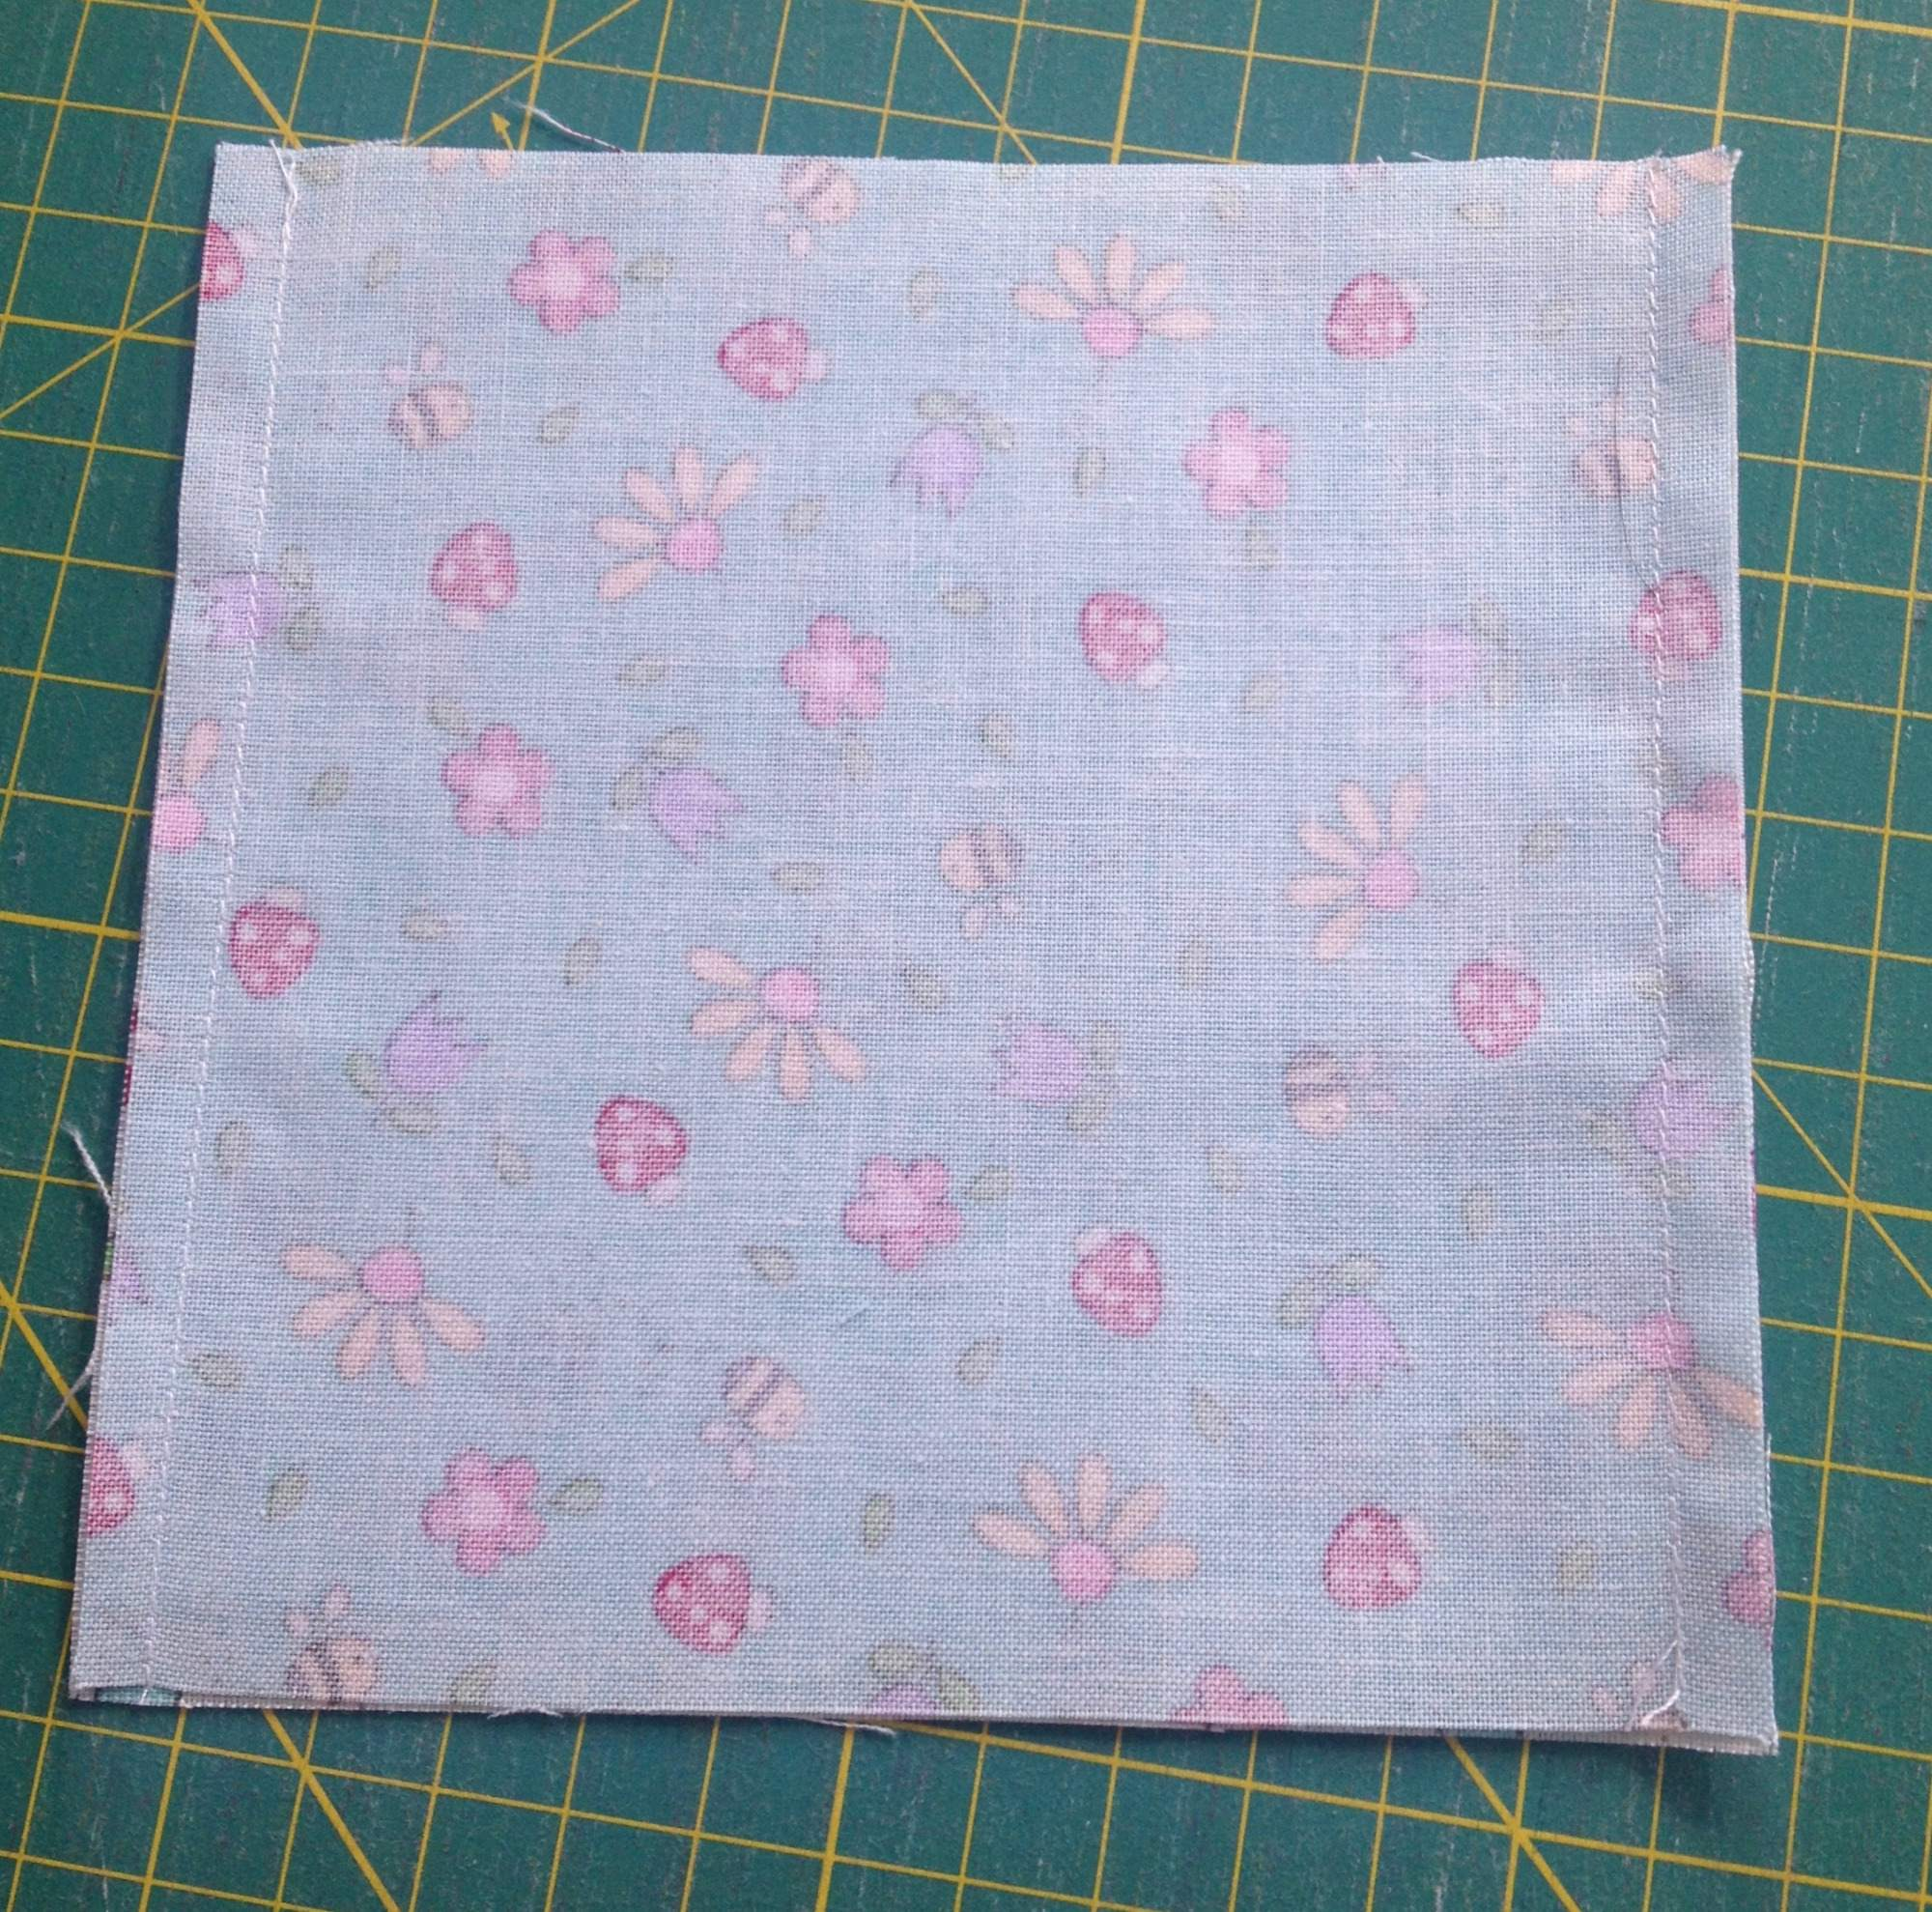 sew charm squares together